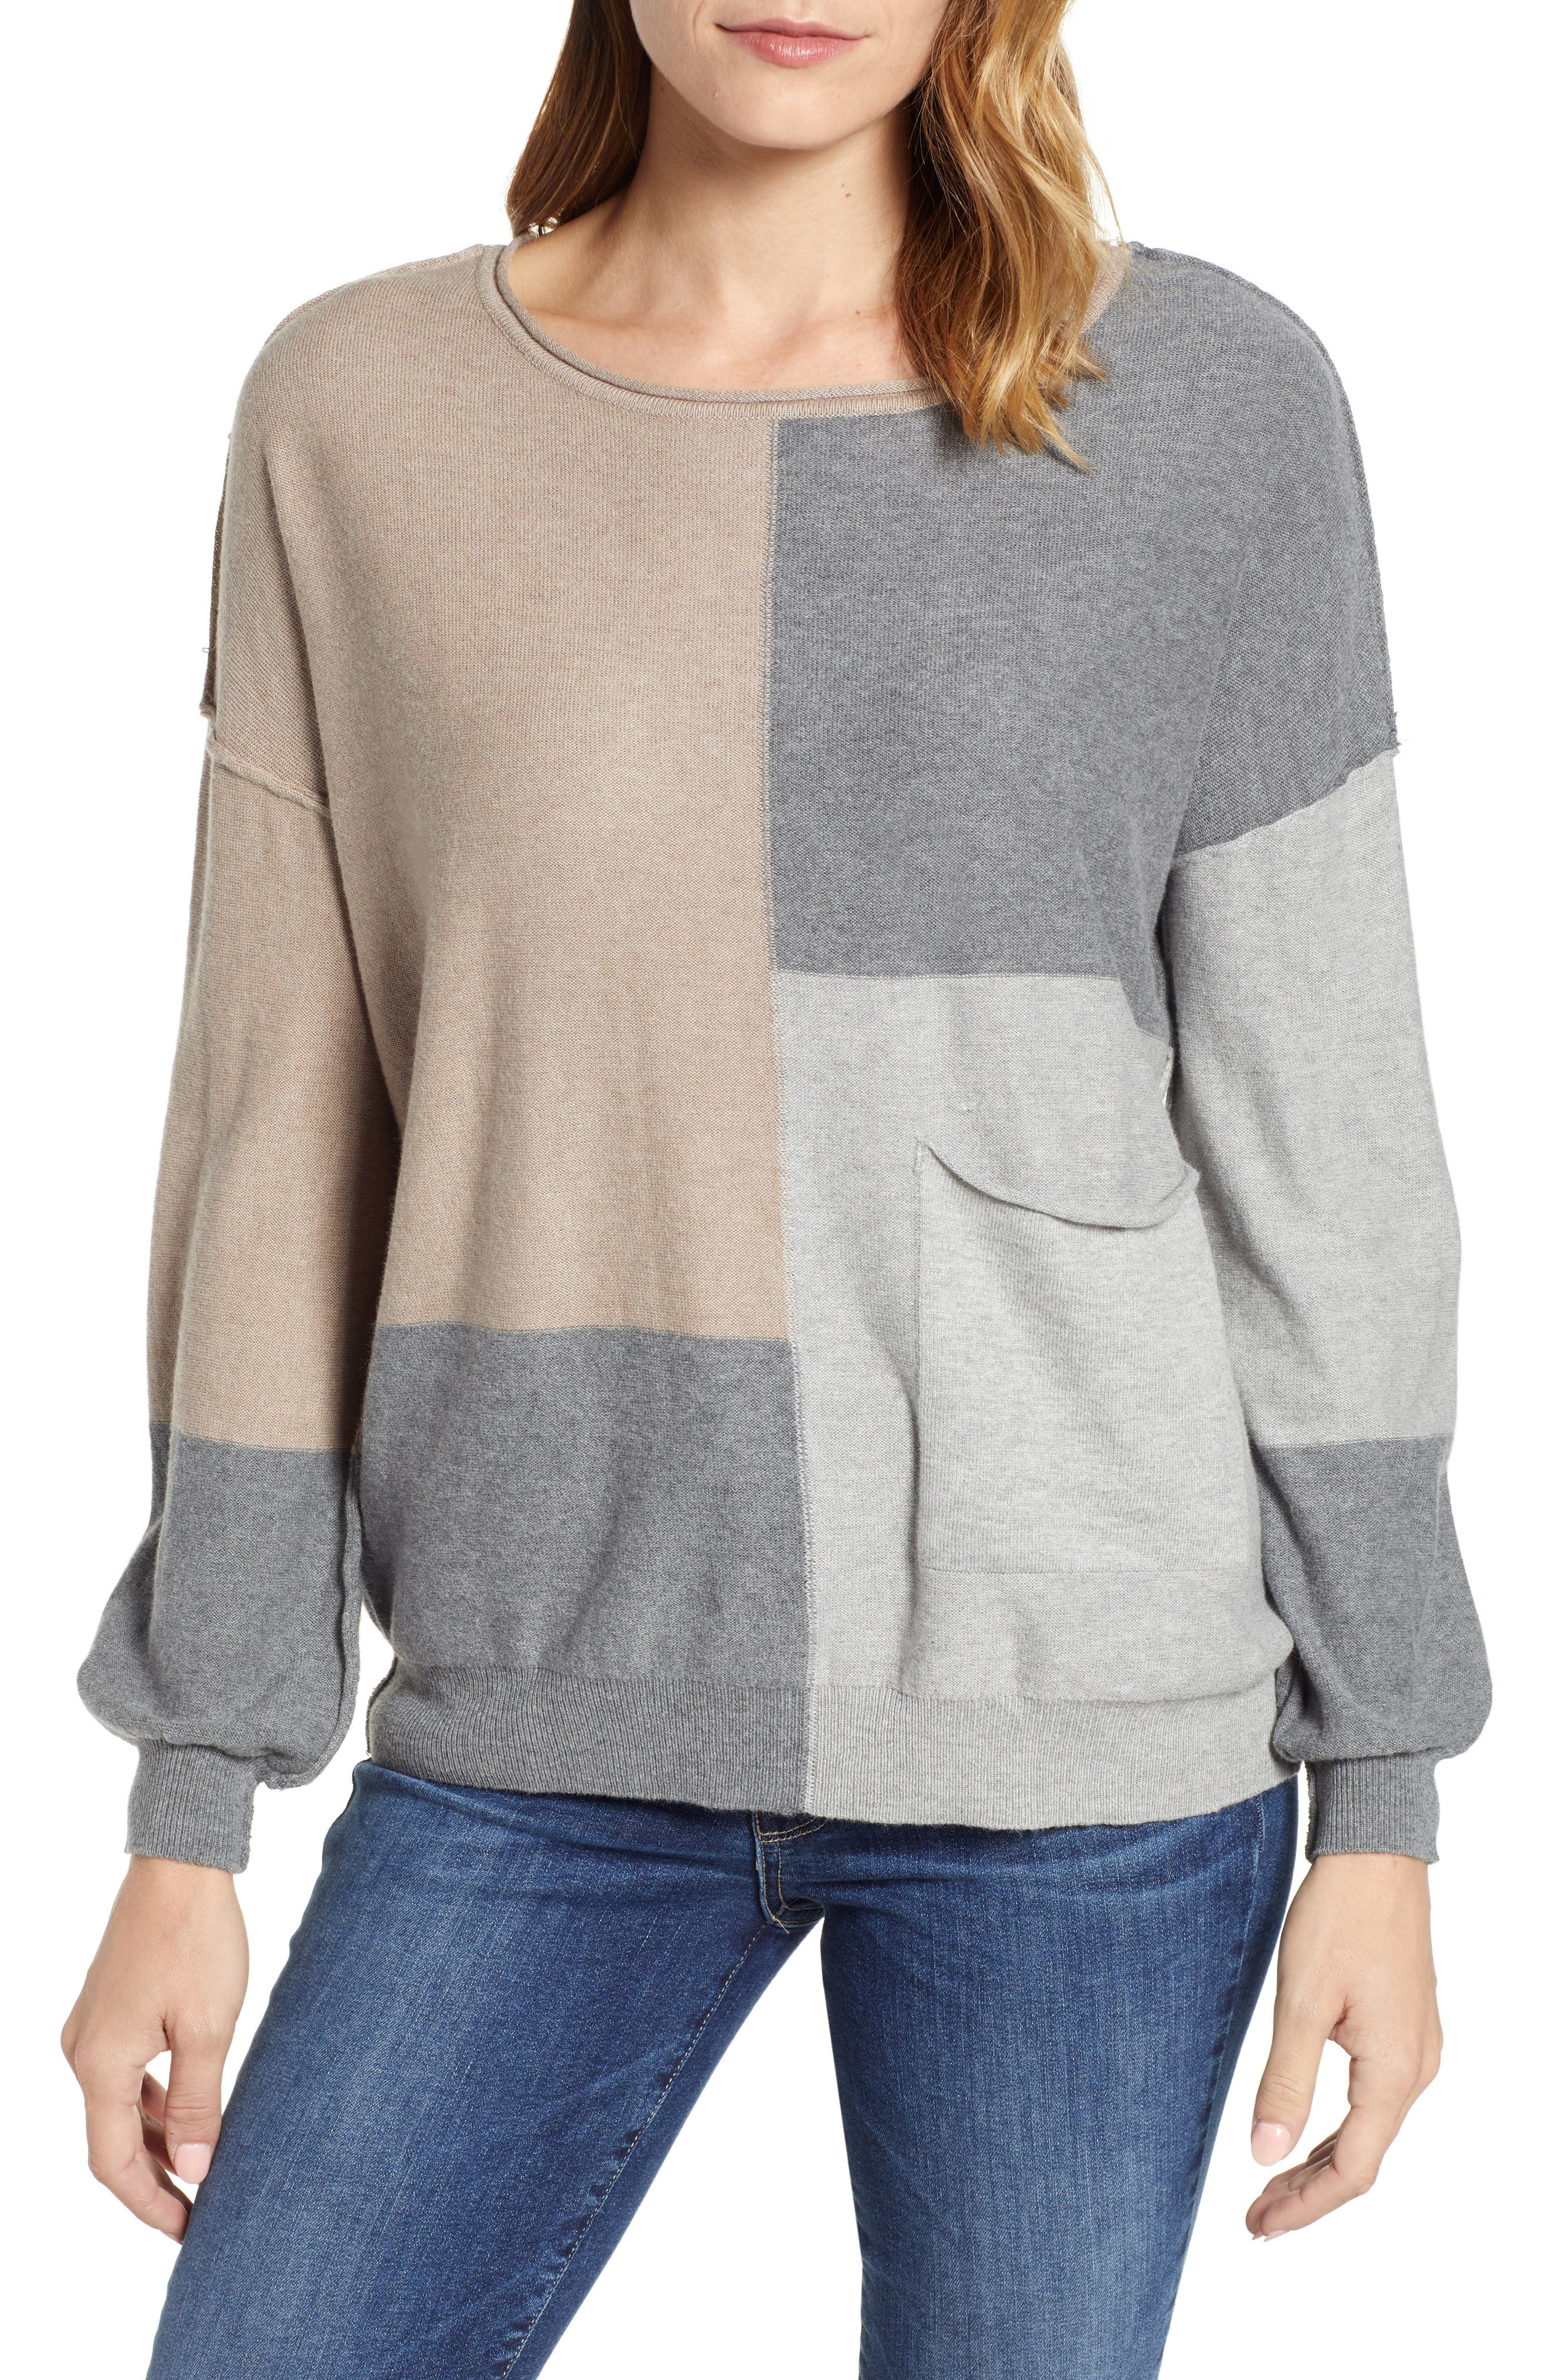 Colorblock Sweater,                             Main thumbnail 1, color,                             TAUPE/ HEATHER GREY